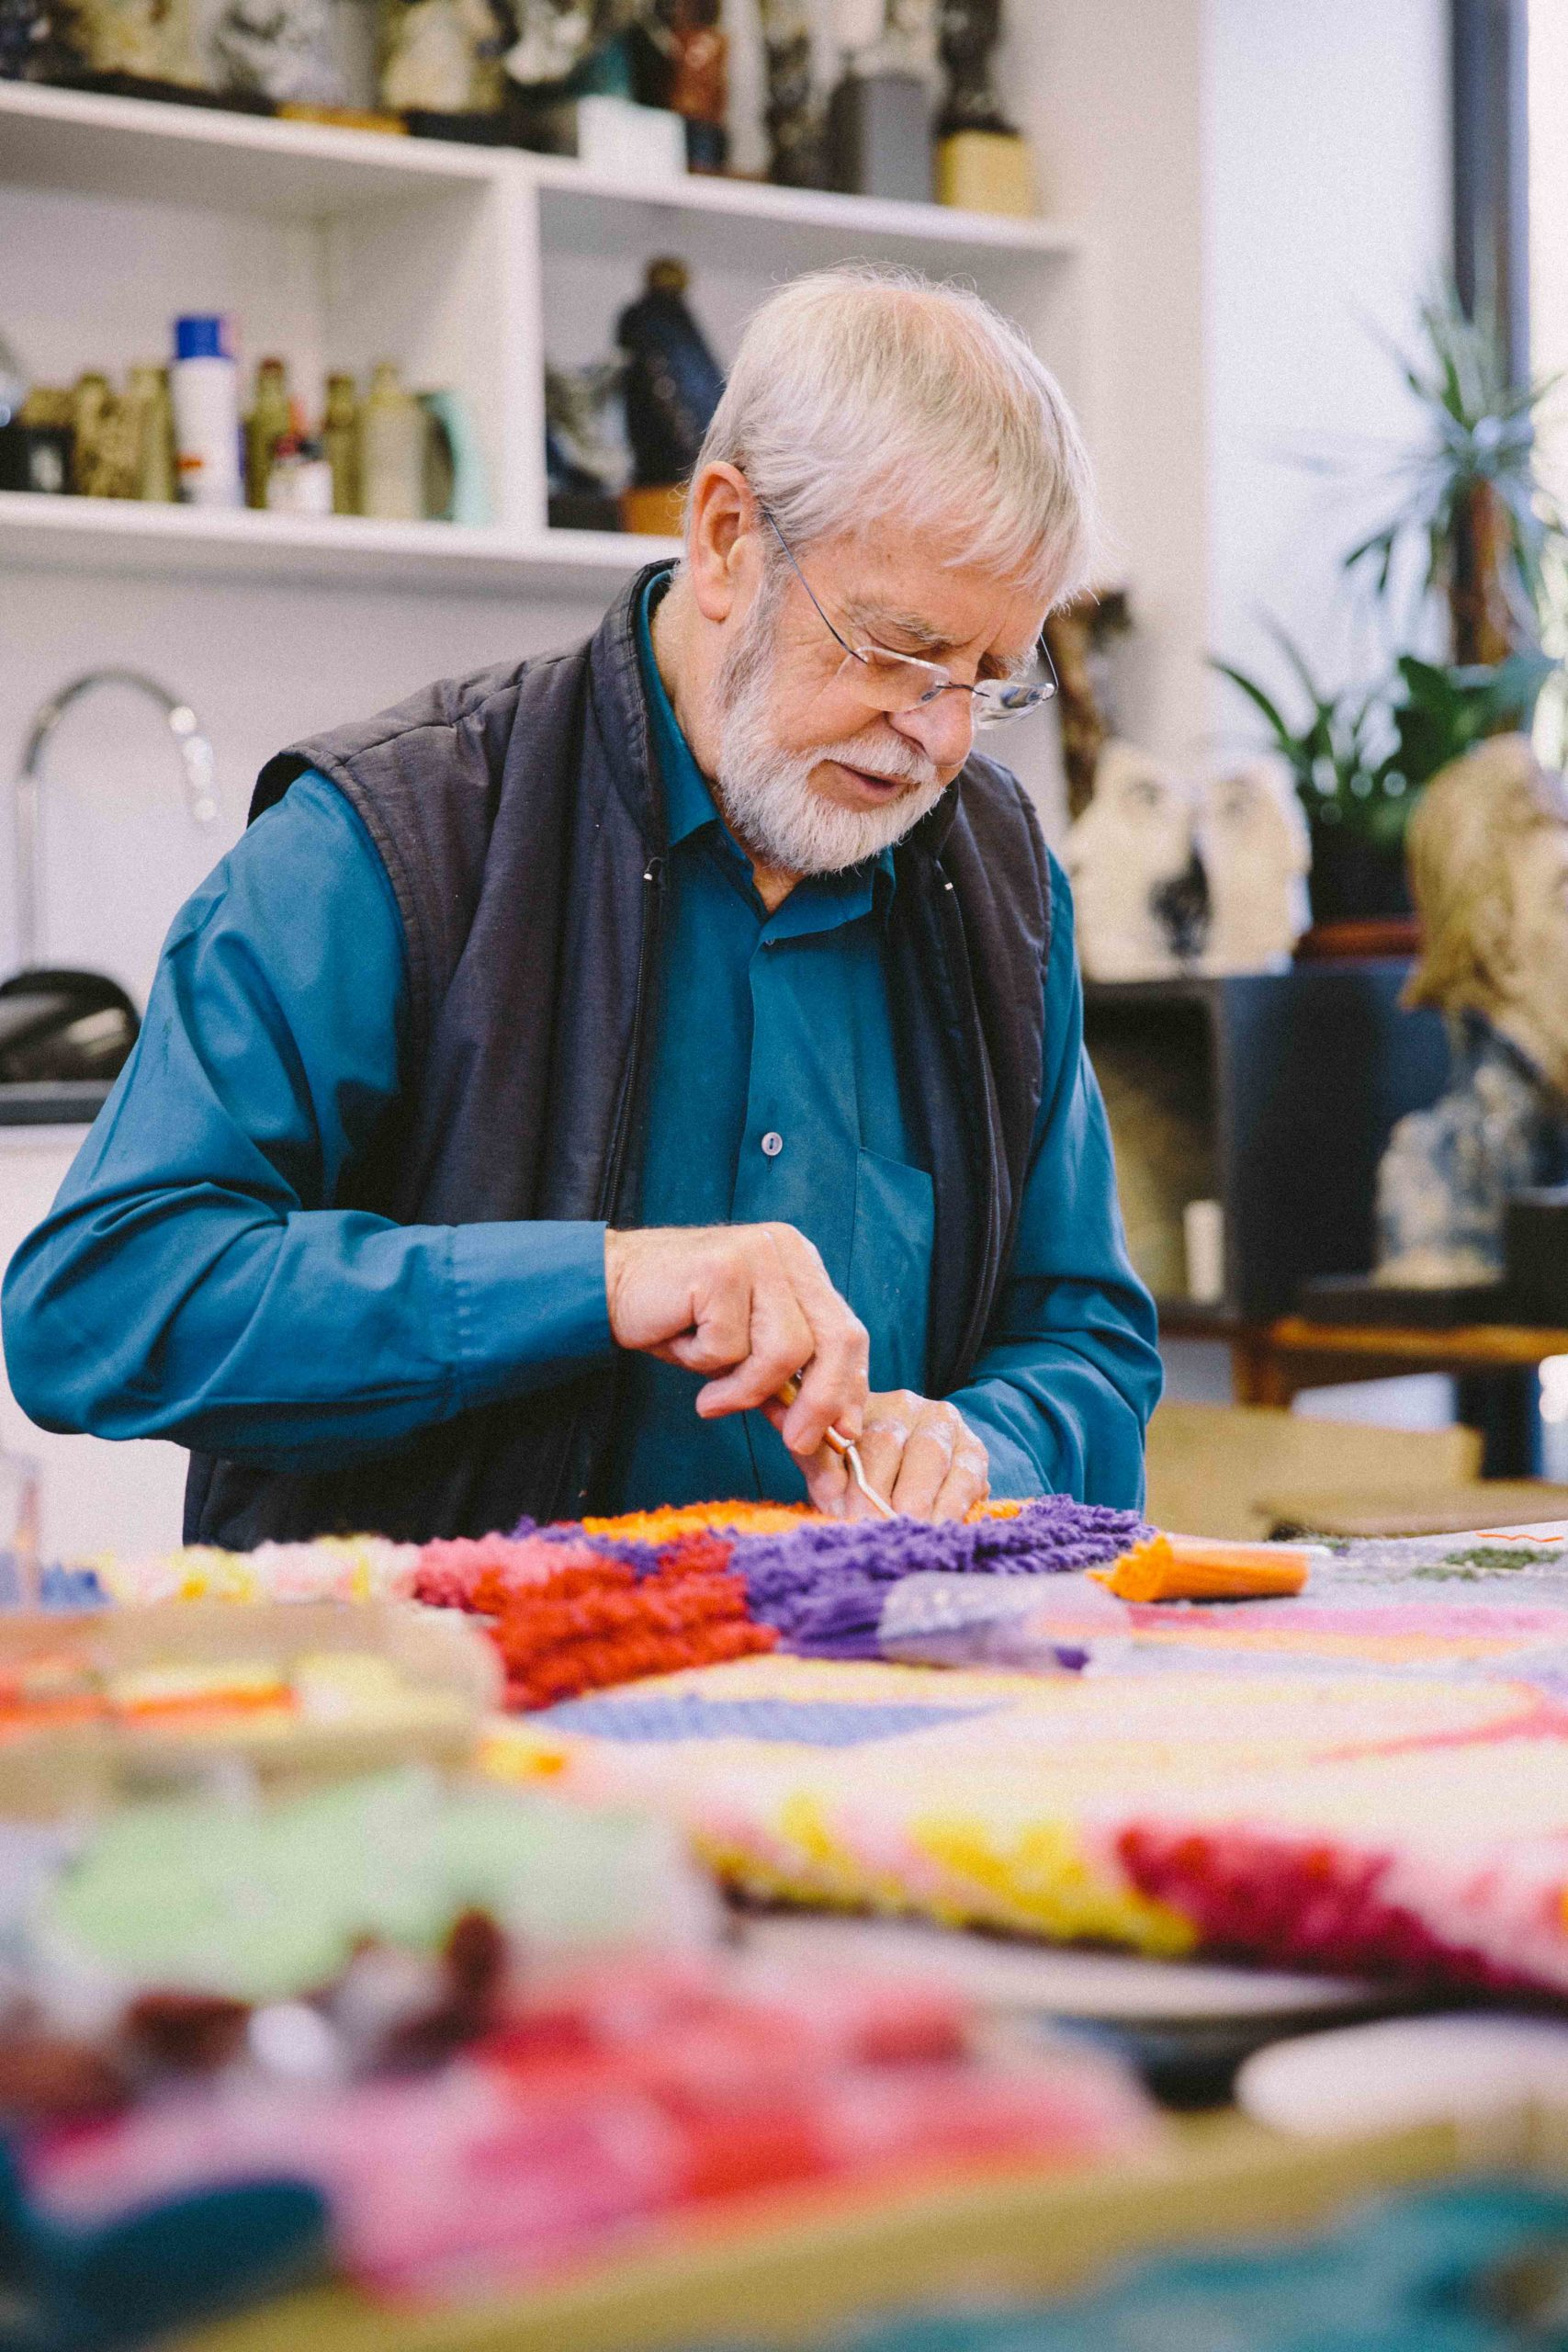 Keith Gretton knotting colour wool into a rug